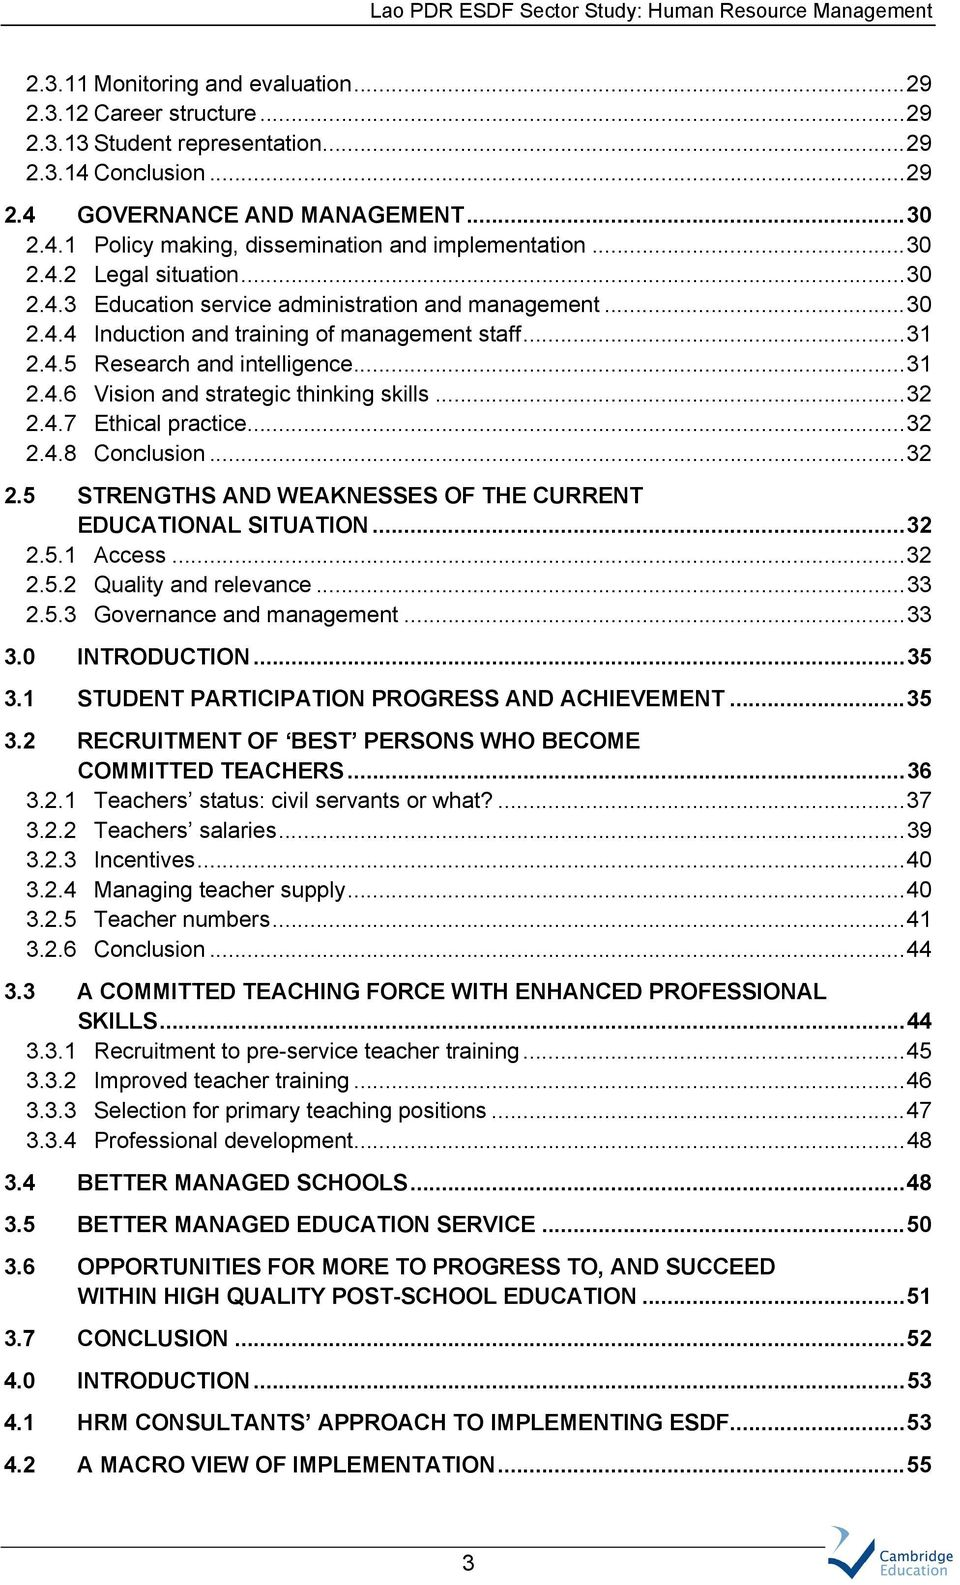 ..32 2.4.7 Ethical practice...32 2.4.8 Conclusion...32 2.5 STRENGTHS AND WEAKNESSES OF THE CURRENT EDUCATIONAL SITUATION...32 2.5.1 Access...32 2.5.2 Quality and relevance...33 2.5.3 Governance and management.